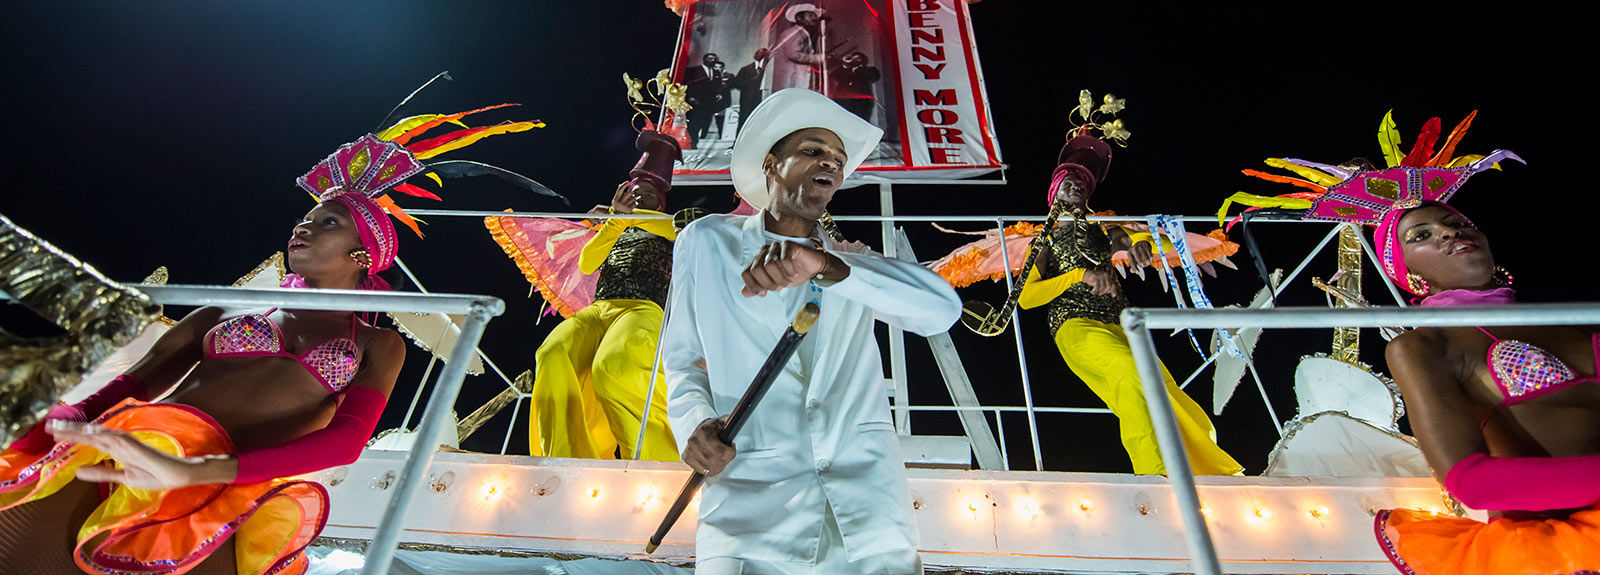 Although they are a far cry from the glory days of their predecessors, floats, comparsas and muñecones still parade down the Malecón from La Punta to the Hotel Nacional every August to the delight of the thousands of revelers who gather on the streets to watch the parade.  Havana, Cuba